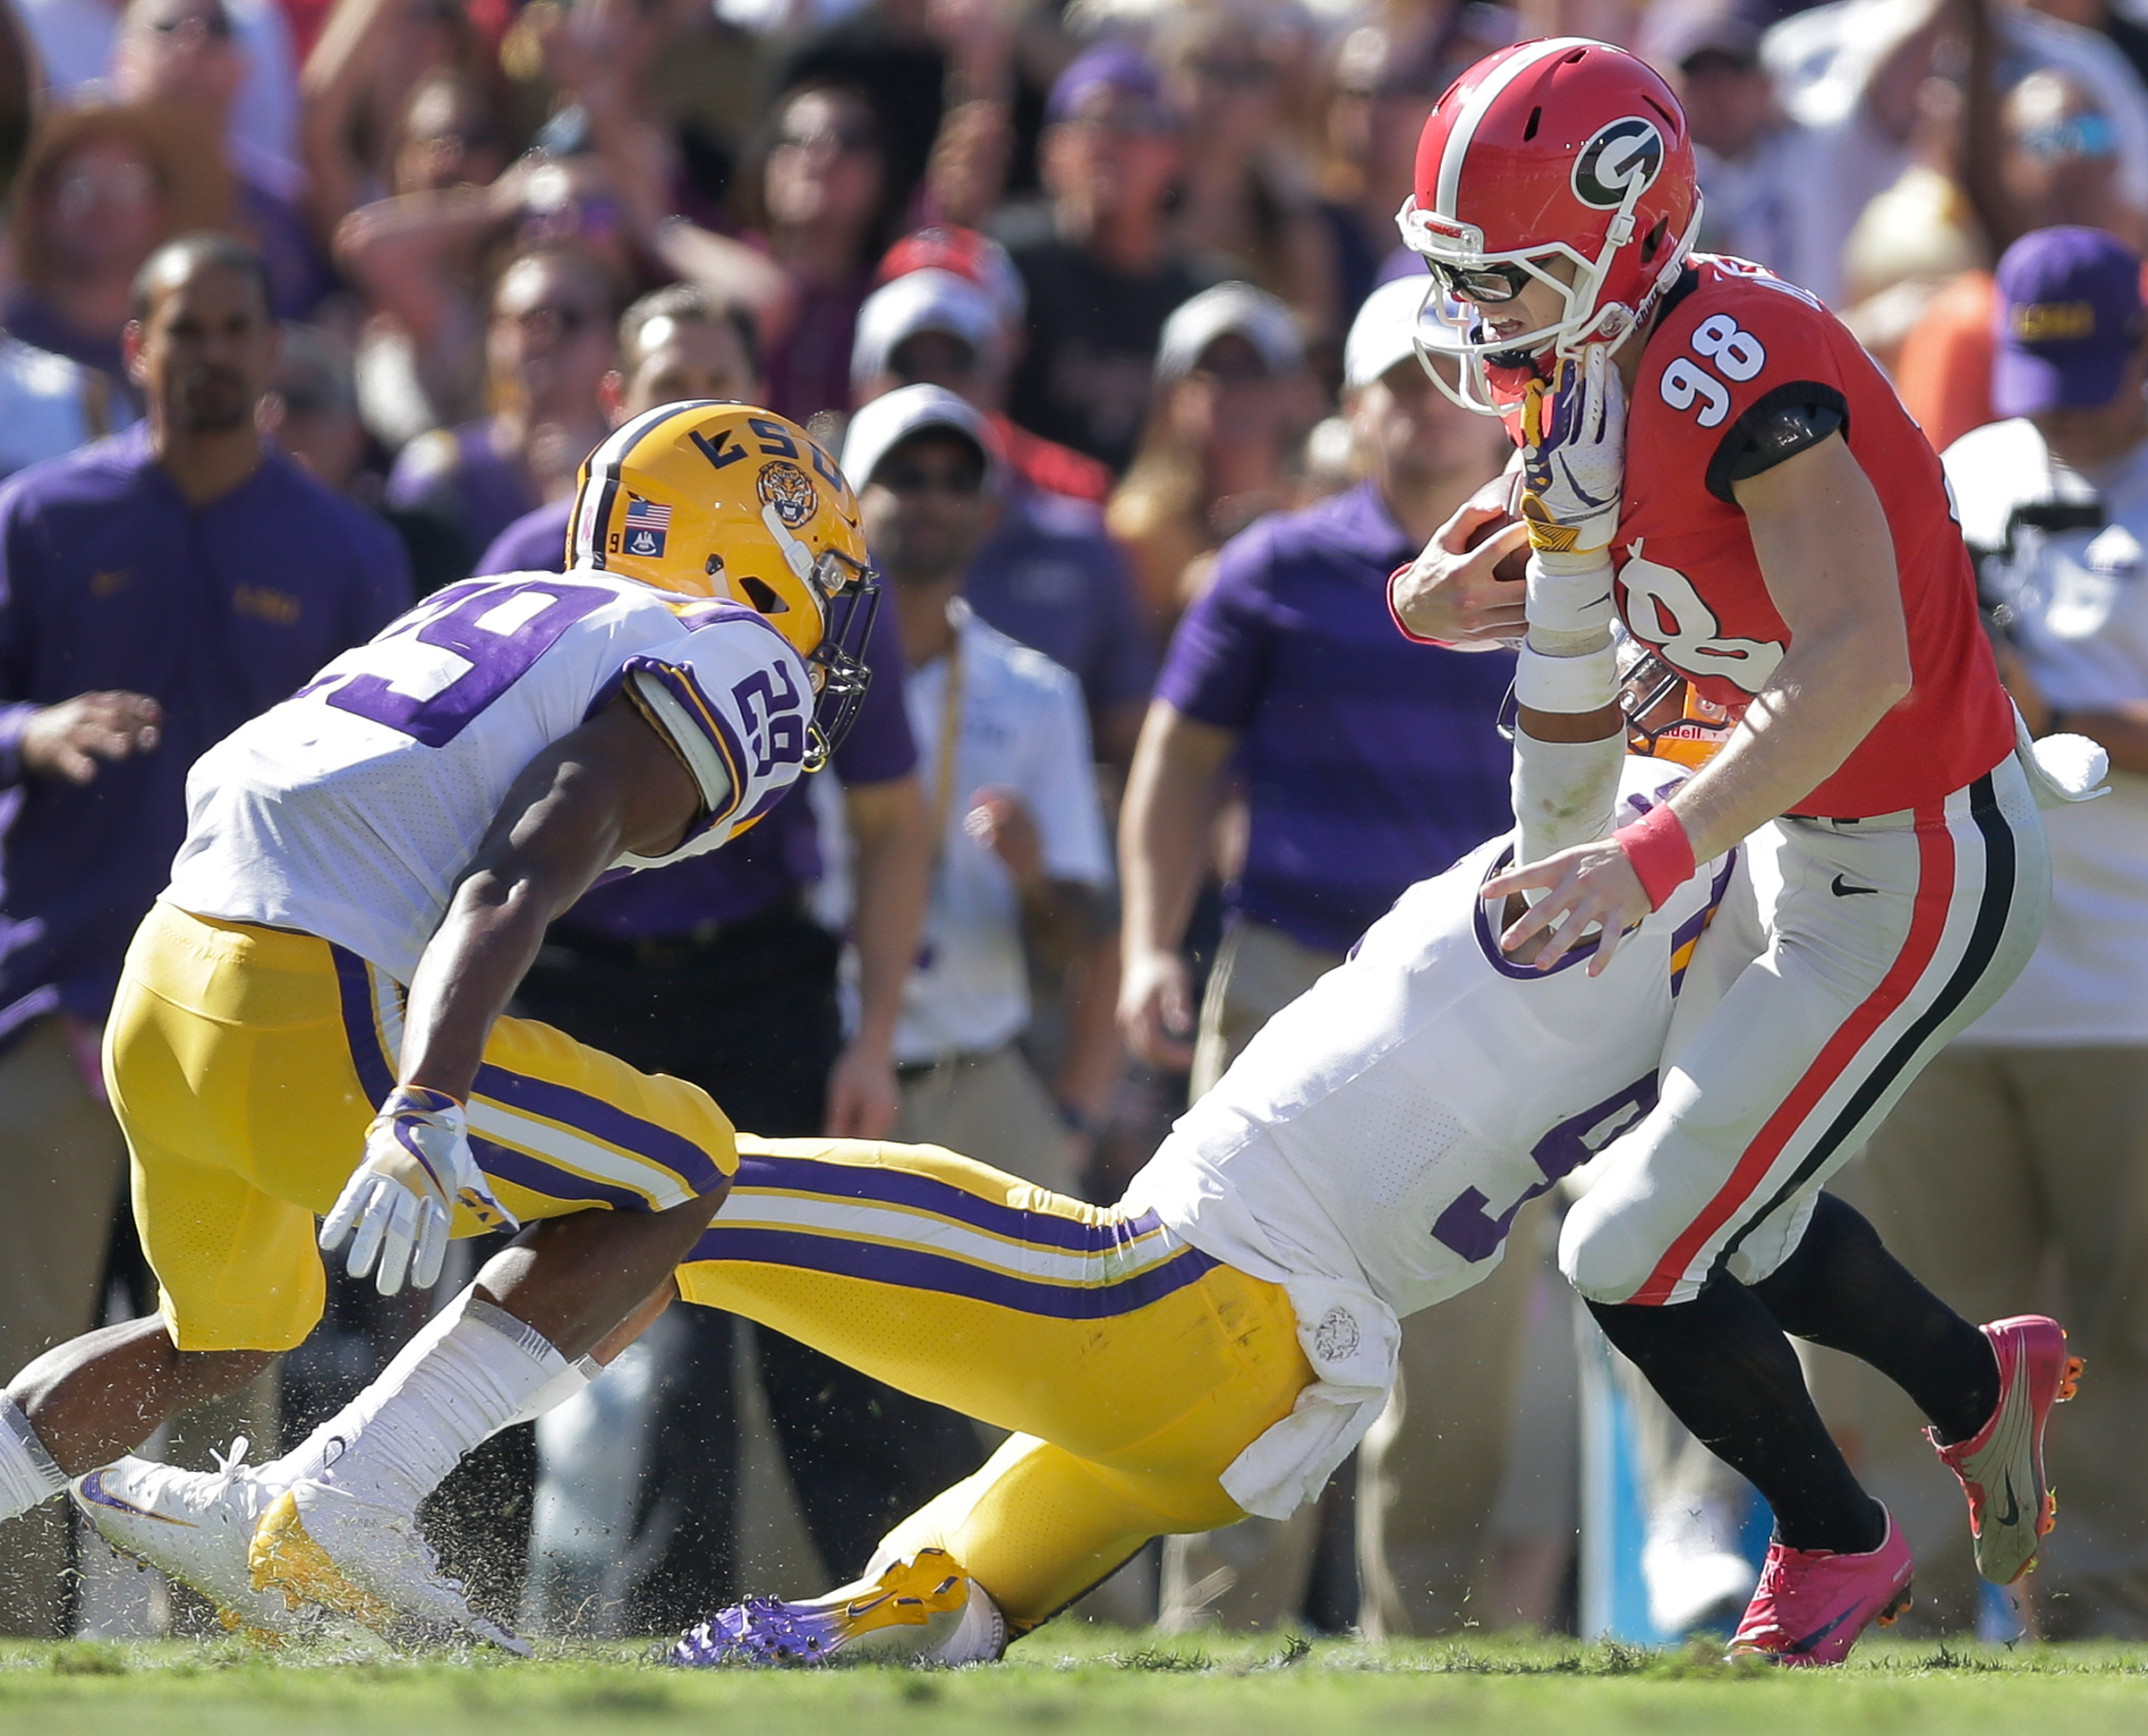 LSU safety Grant Delpit (9) takes down Georgia place kicker Rodrigo Blankenship (98) after he attempted a fake field goal in the first half during first half action in Baton Rouge on Saturday, October 13, 2018. (Photo by Brett Duke, NOLA.com | The Times-Picayune) NOLA.com | The Times-Picayune